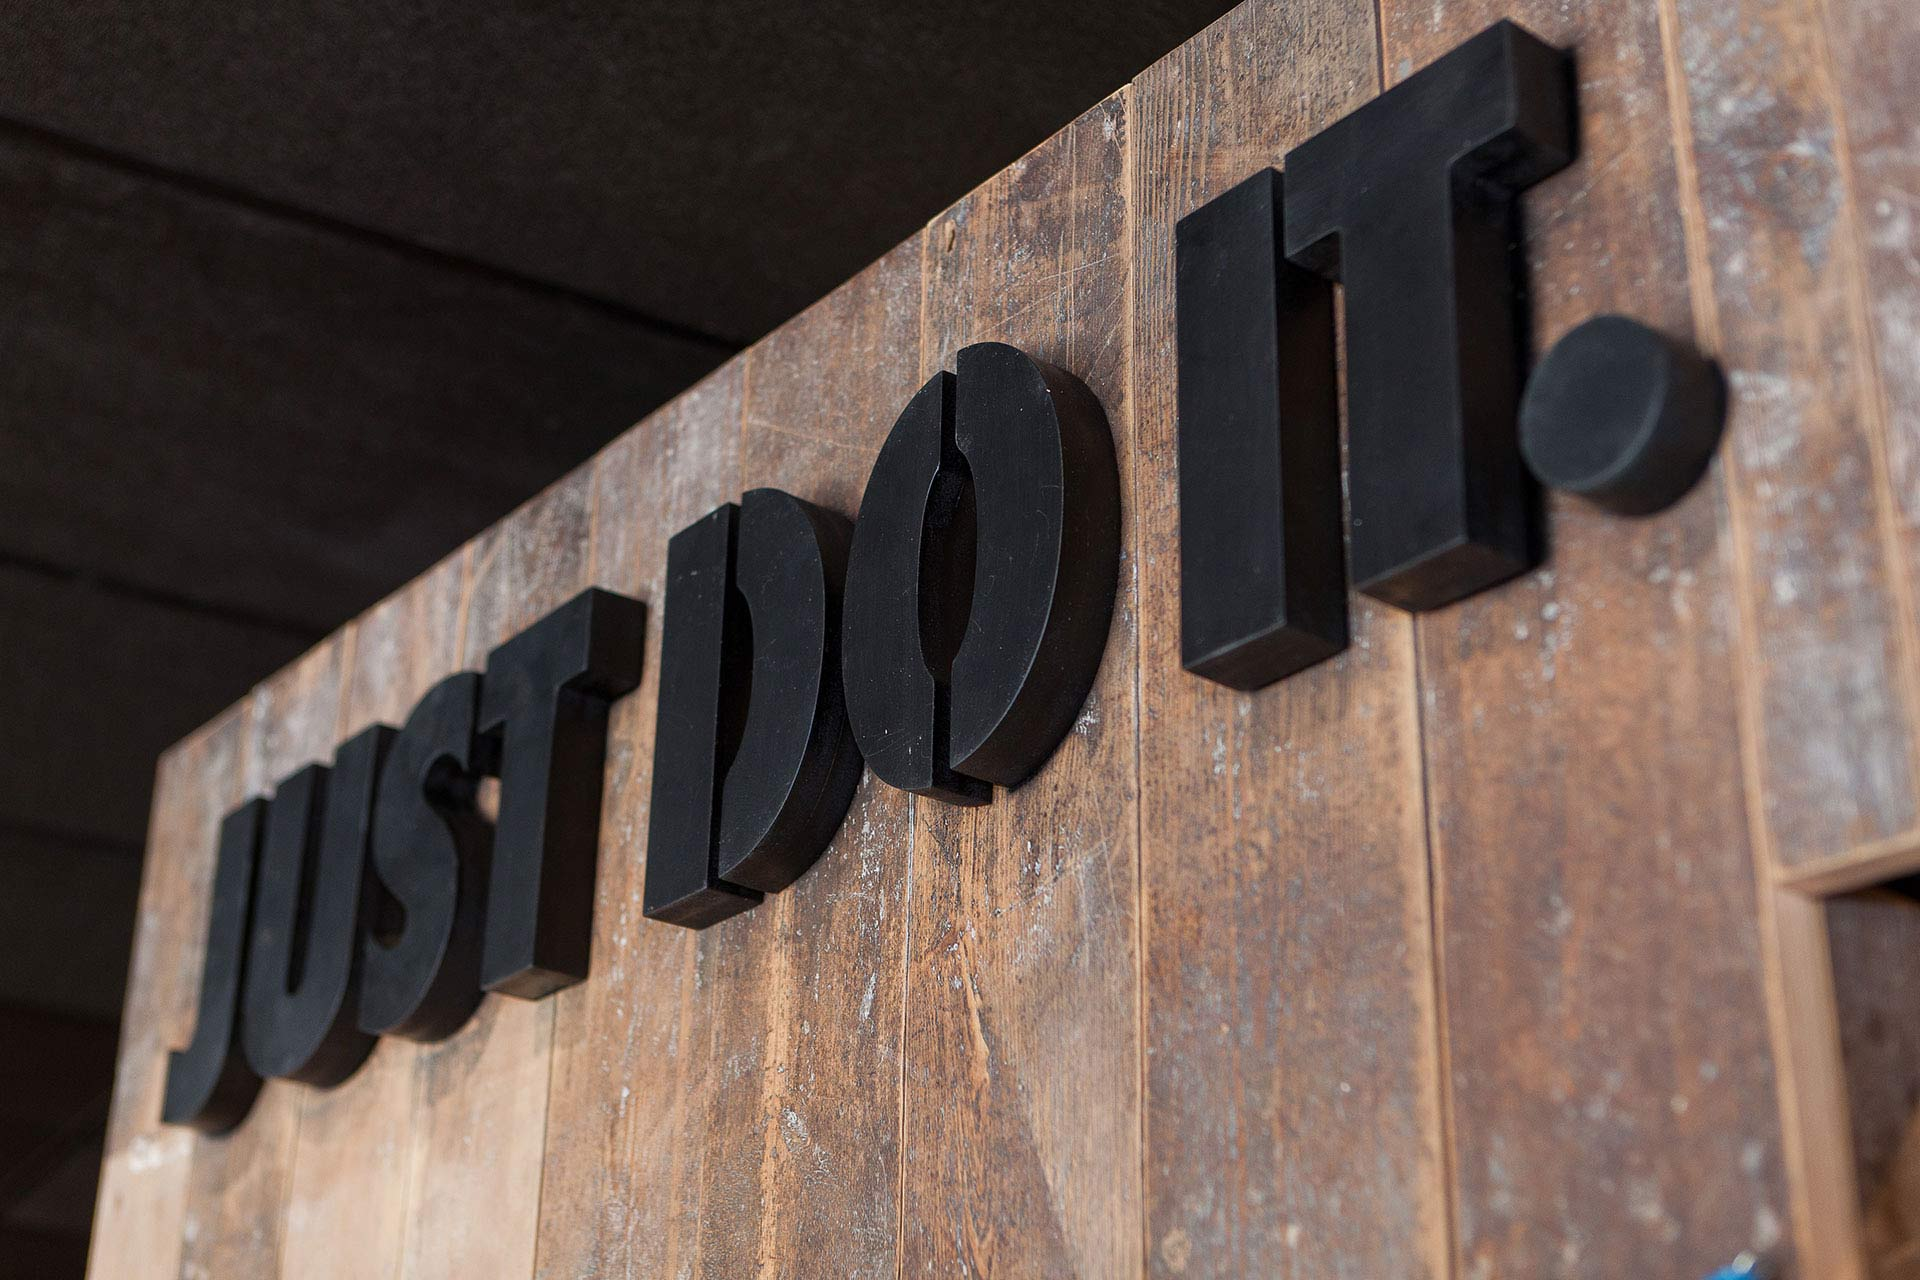 The Nike 'Just Do It' sign, a focal point in the store